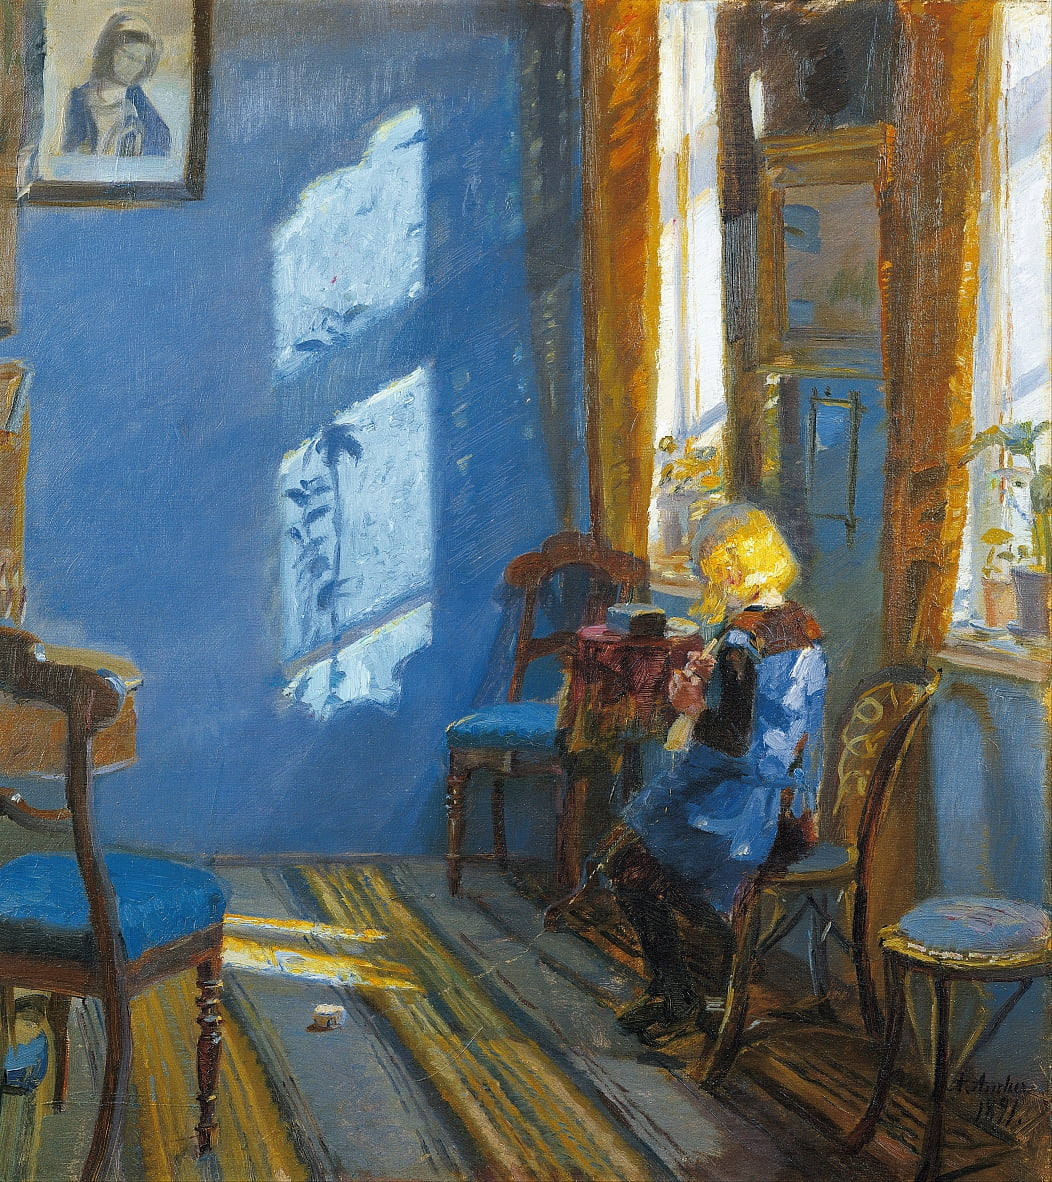 Sunlight in the blue room by Anna Ancher